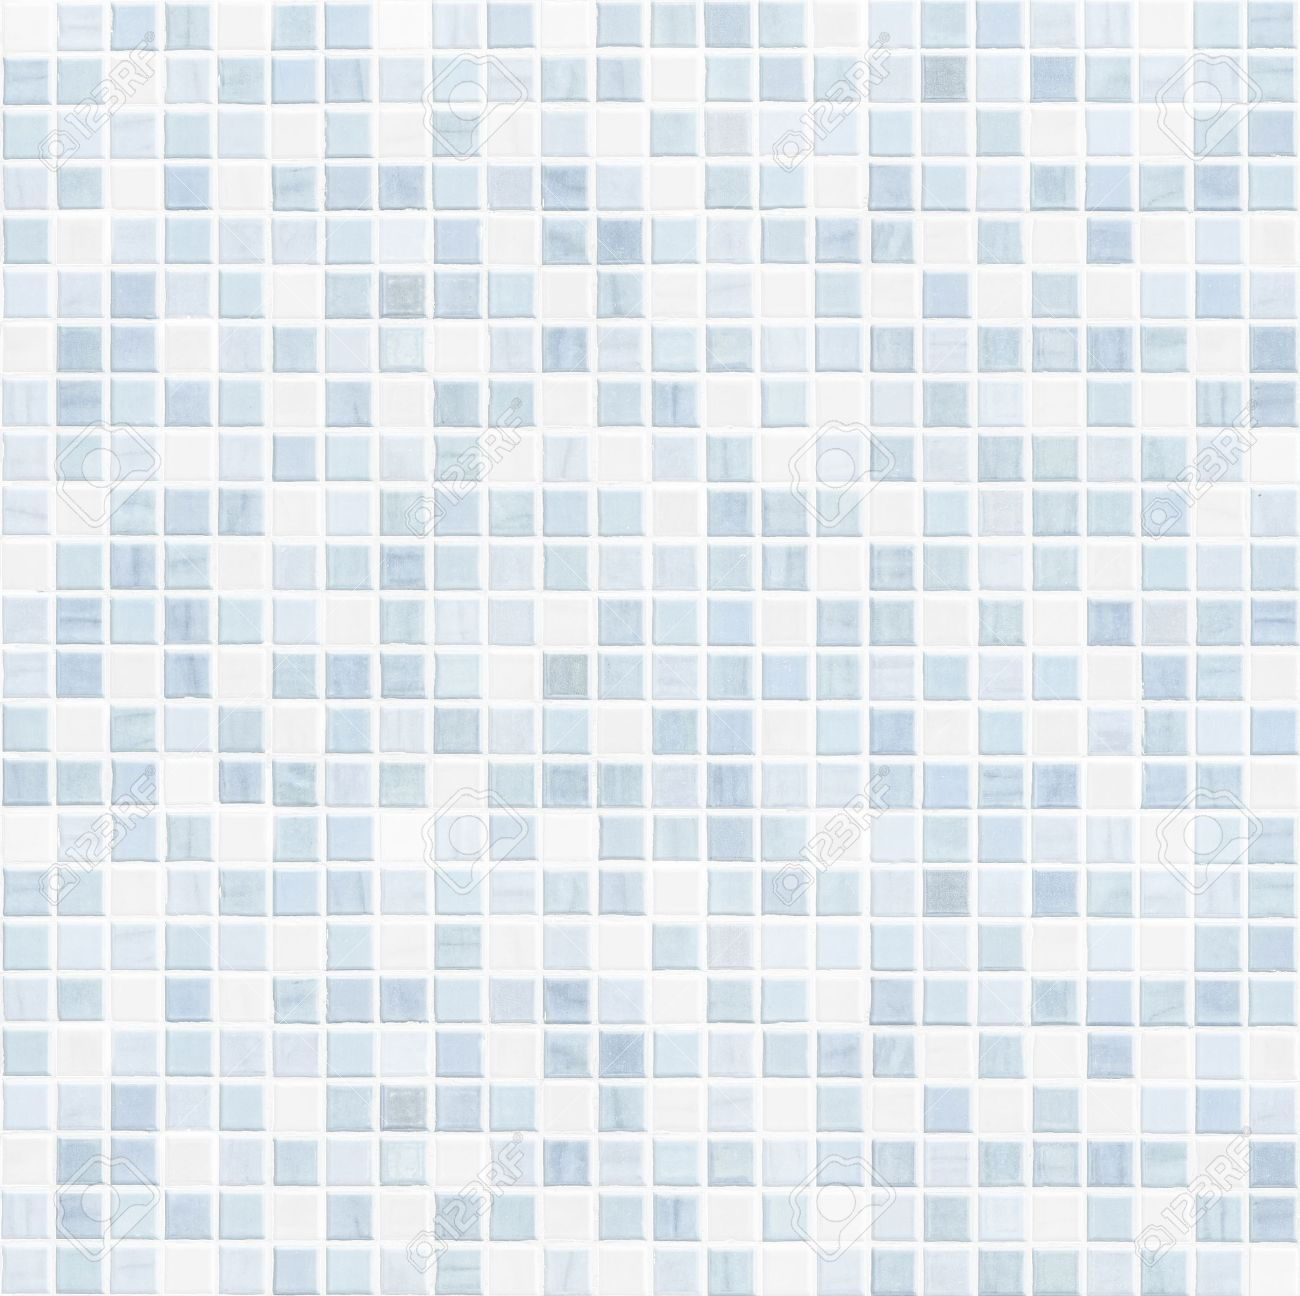 High Quality Blue Tile Wall High Resolution Ceramic Tile Bathroom Wall Stock Photo    48049991